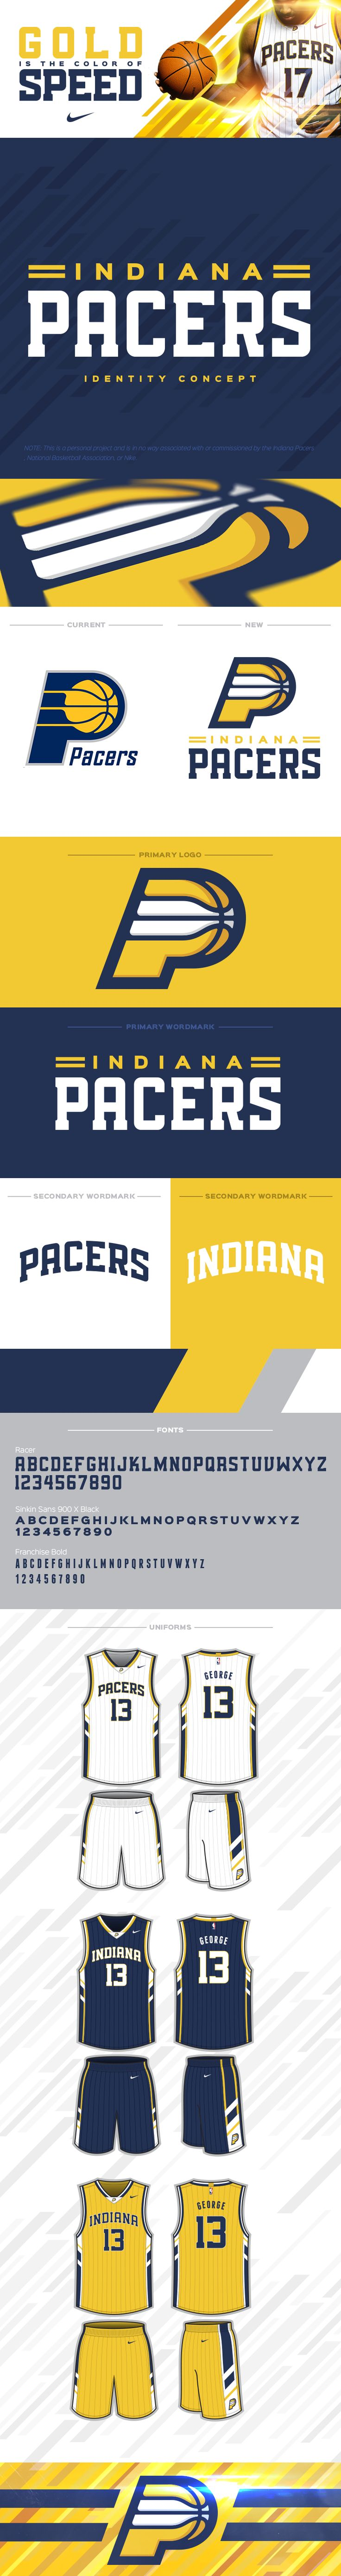 This is a Identity Concept for the Indiana Pacers basketball team.